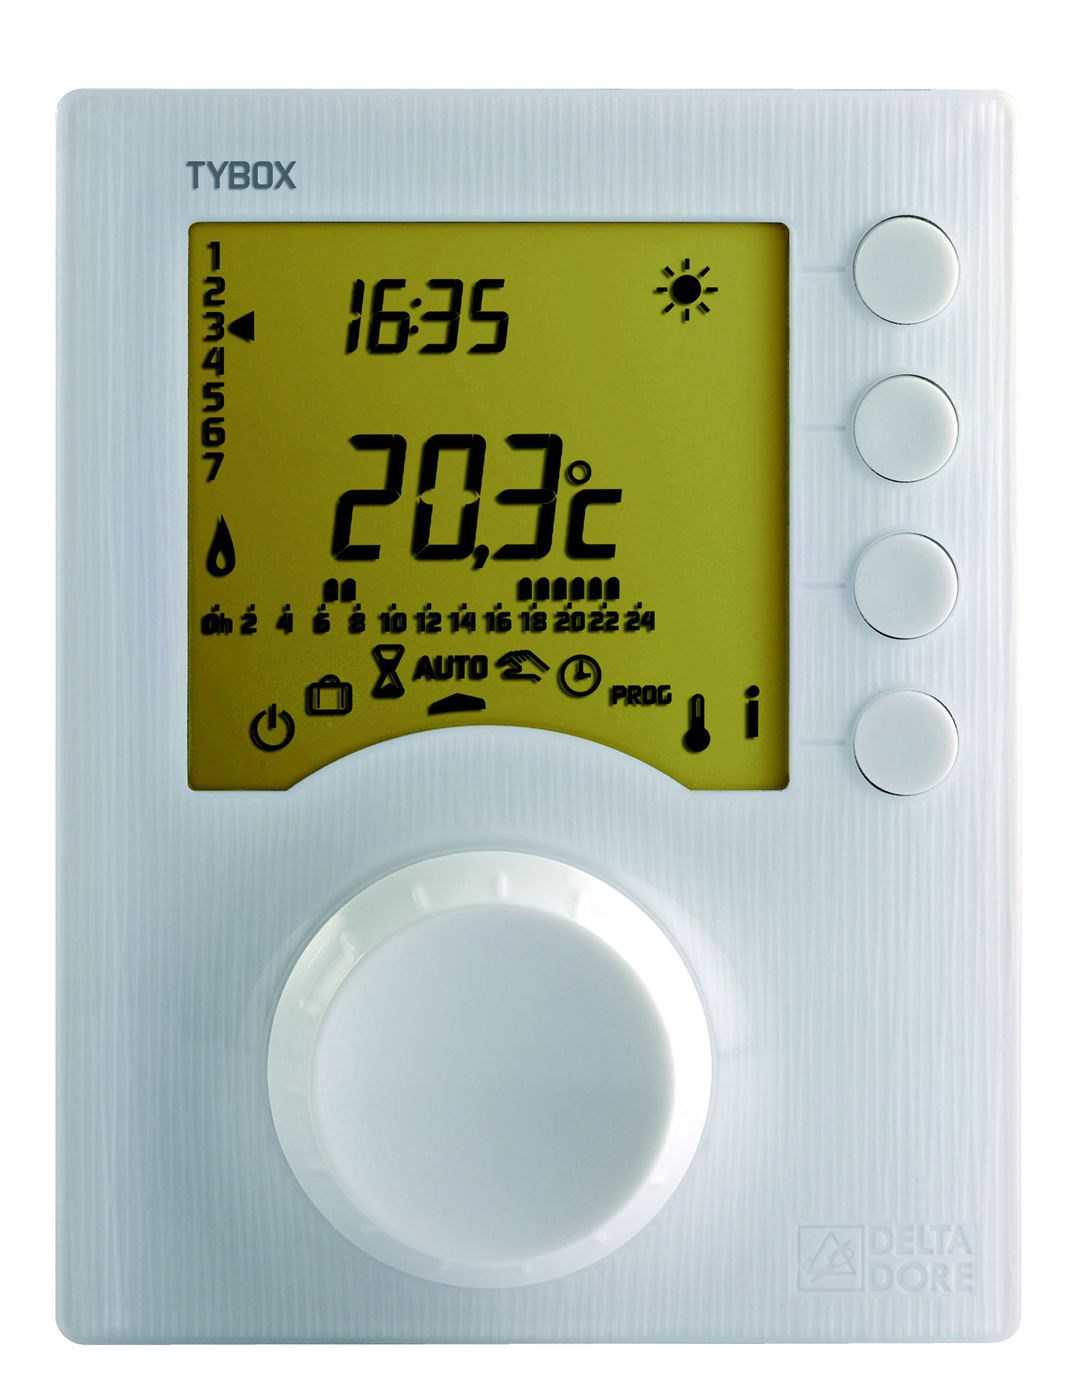 Thermostat programmable filaire 1 zone tybox delta dore - Thermostat d ambiance programmable filaire ...